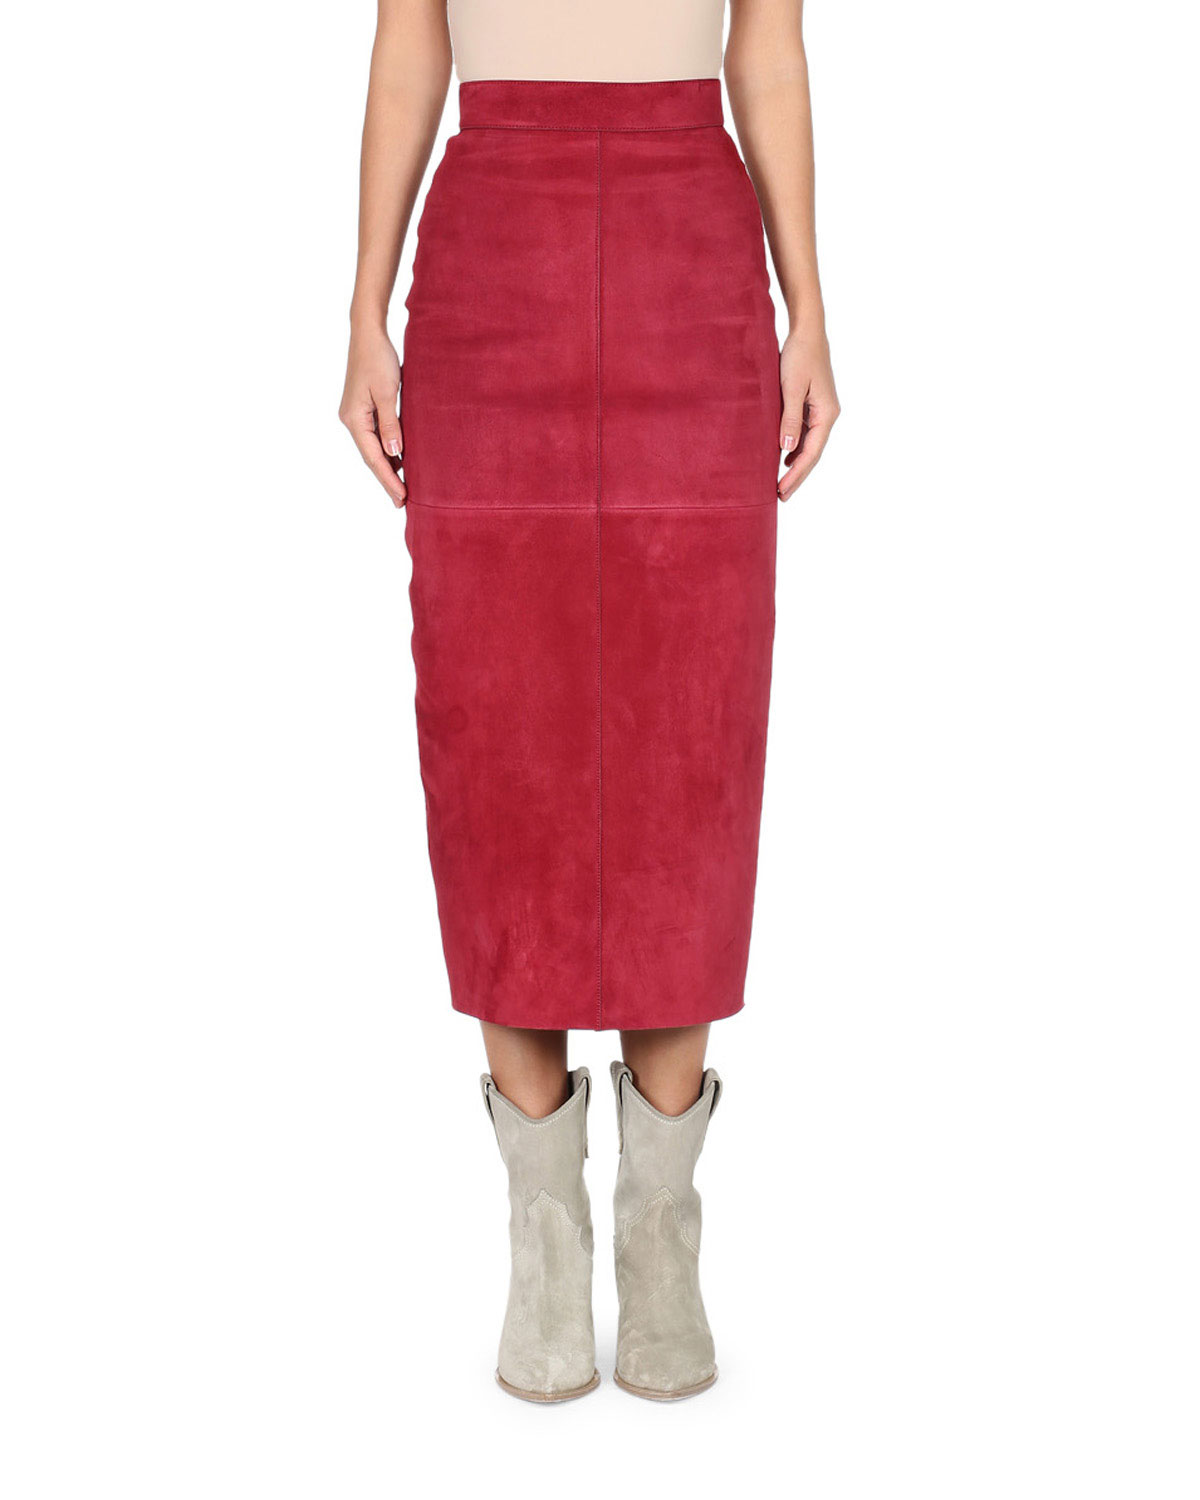 FENDI HIGH-WAIST SUEDE PENCIL SKIRT